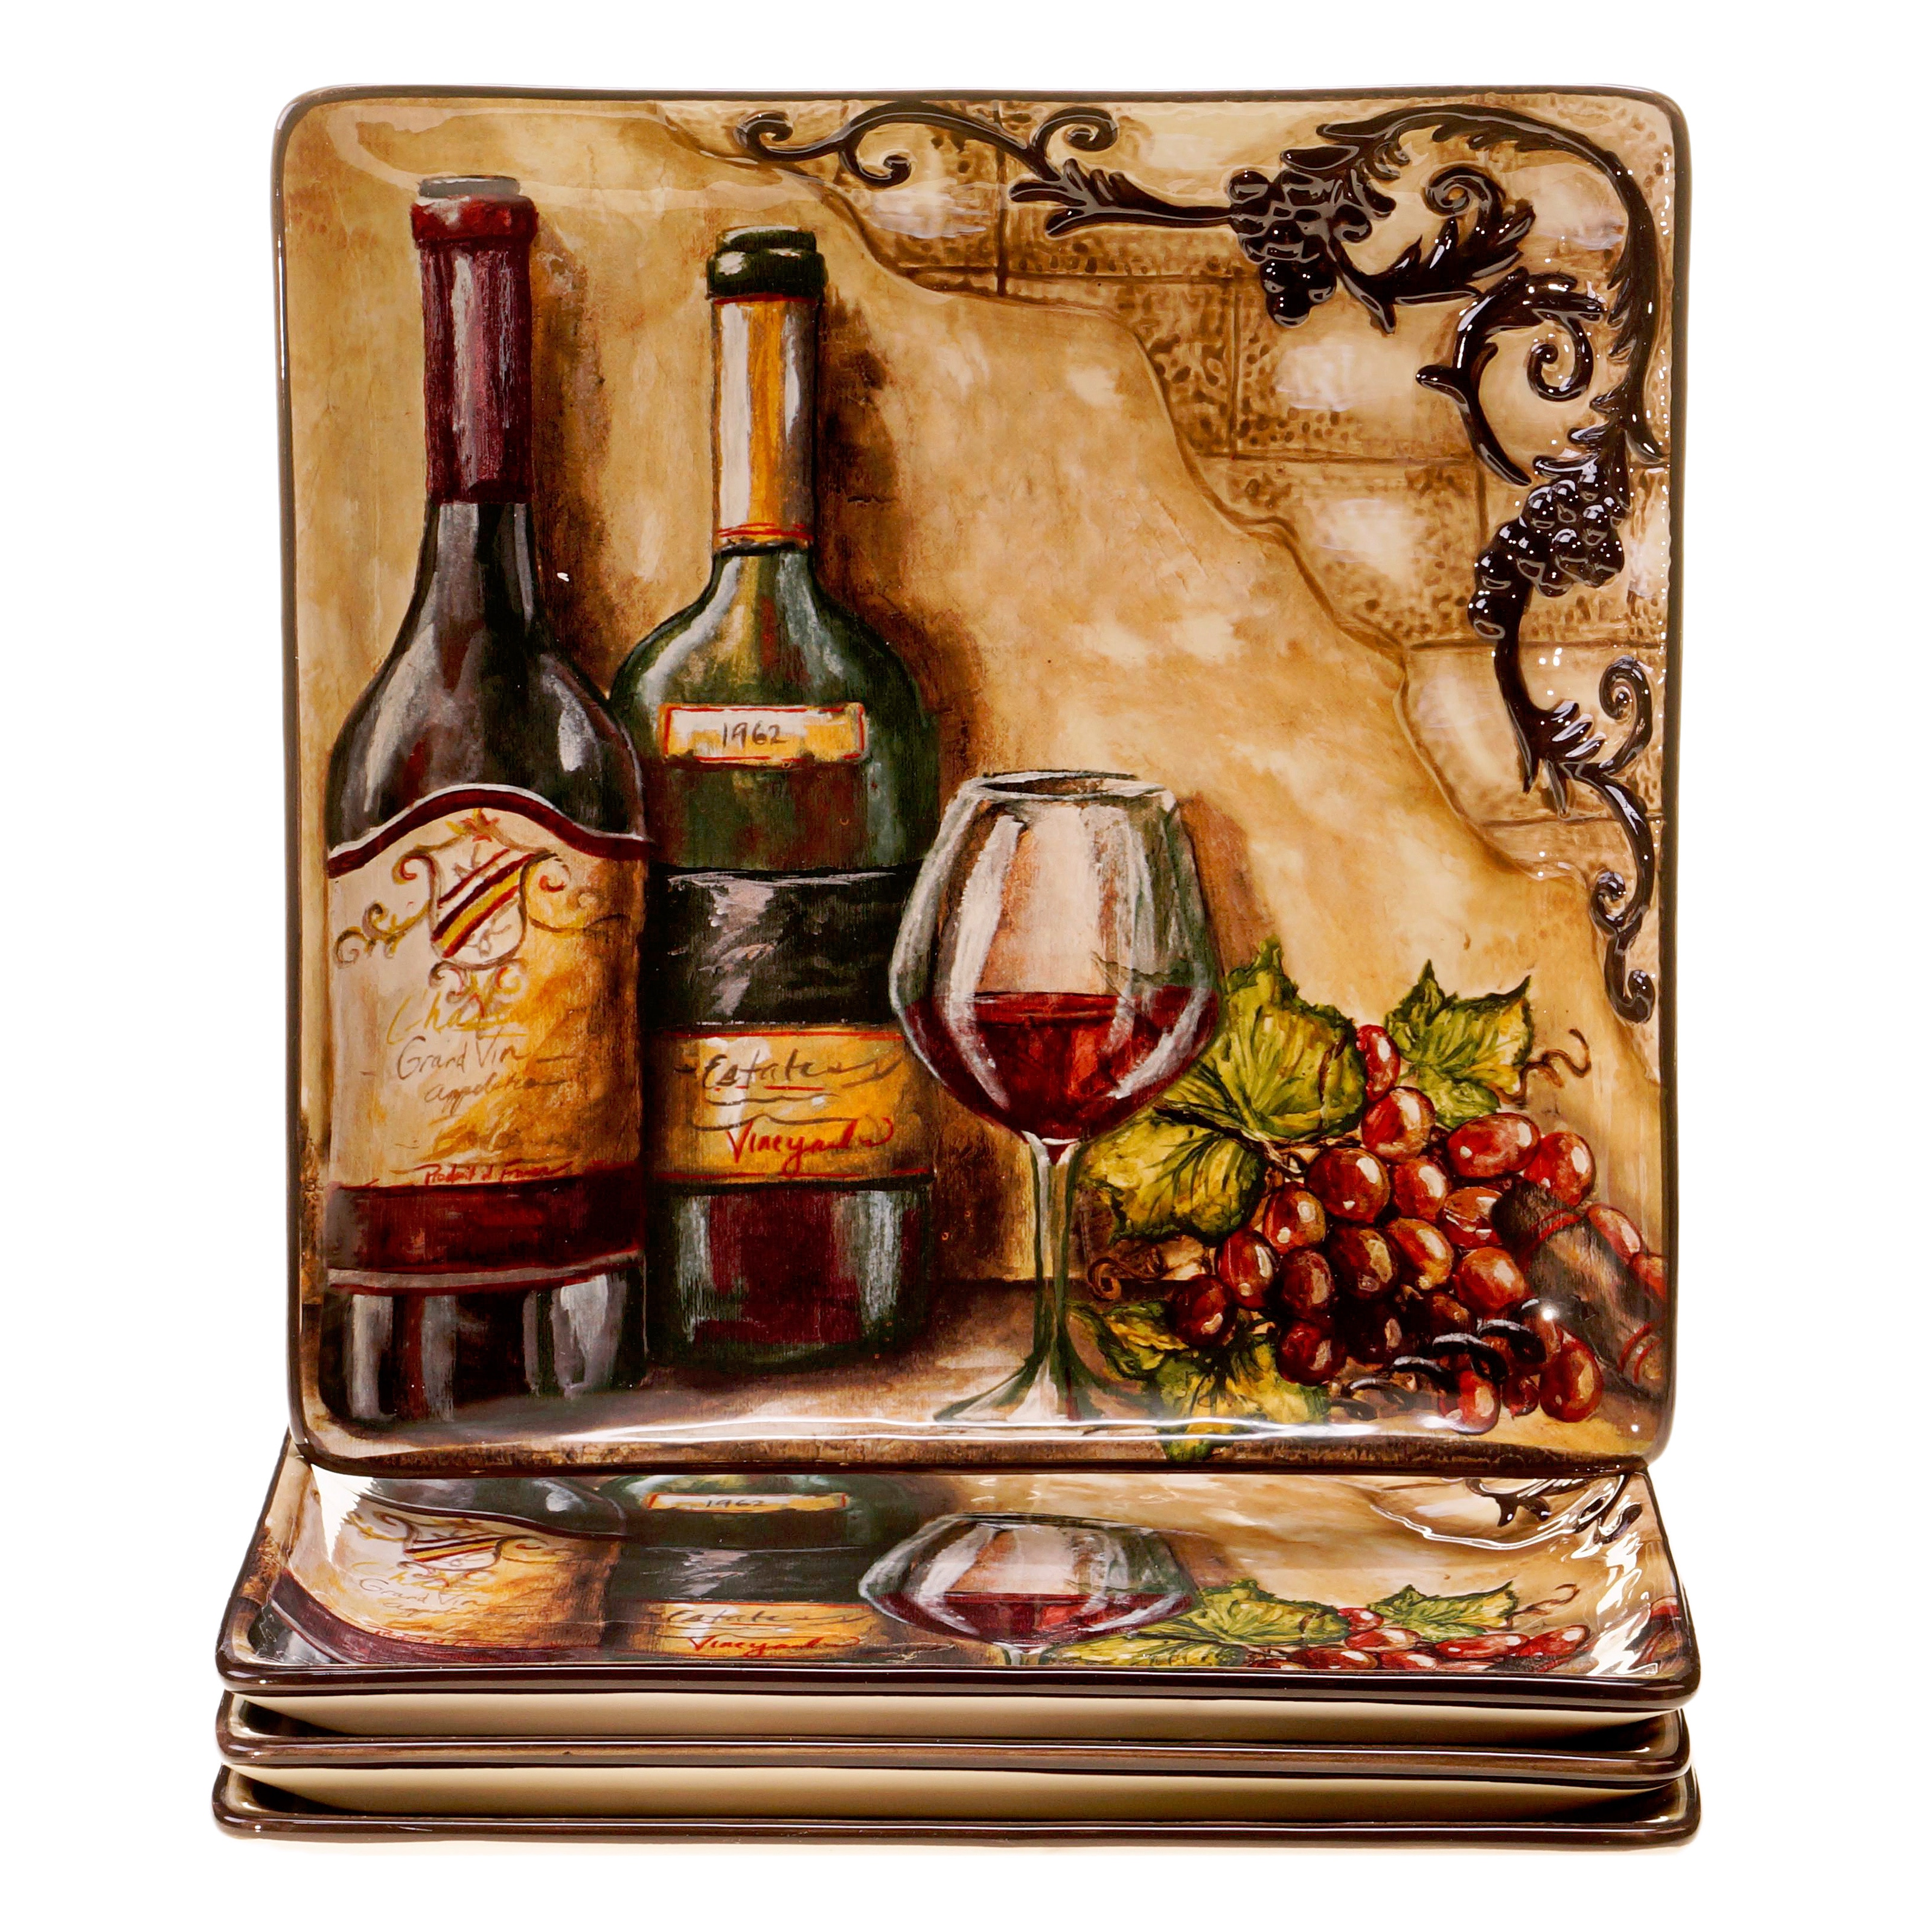 Certified Intl Hand-painted Tuscan View 10.75-inch Cerami...